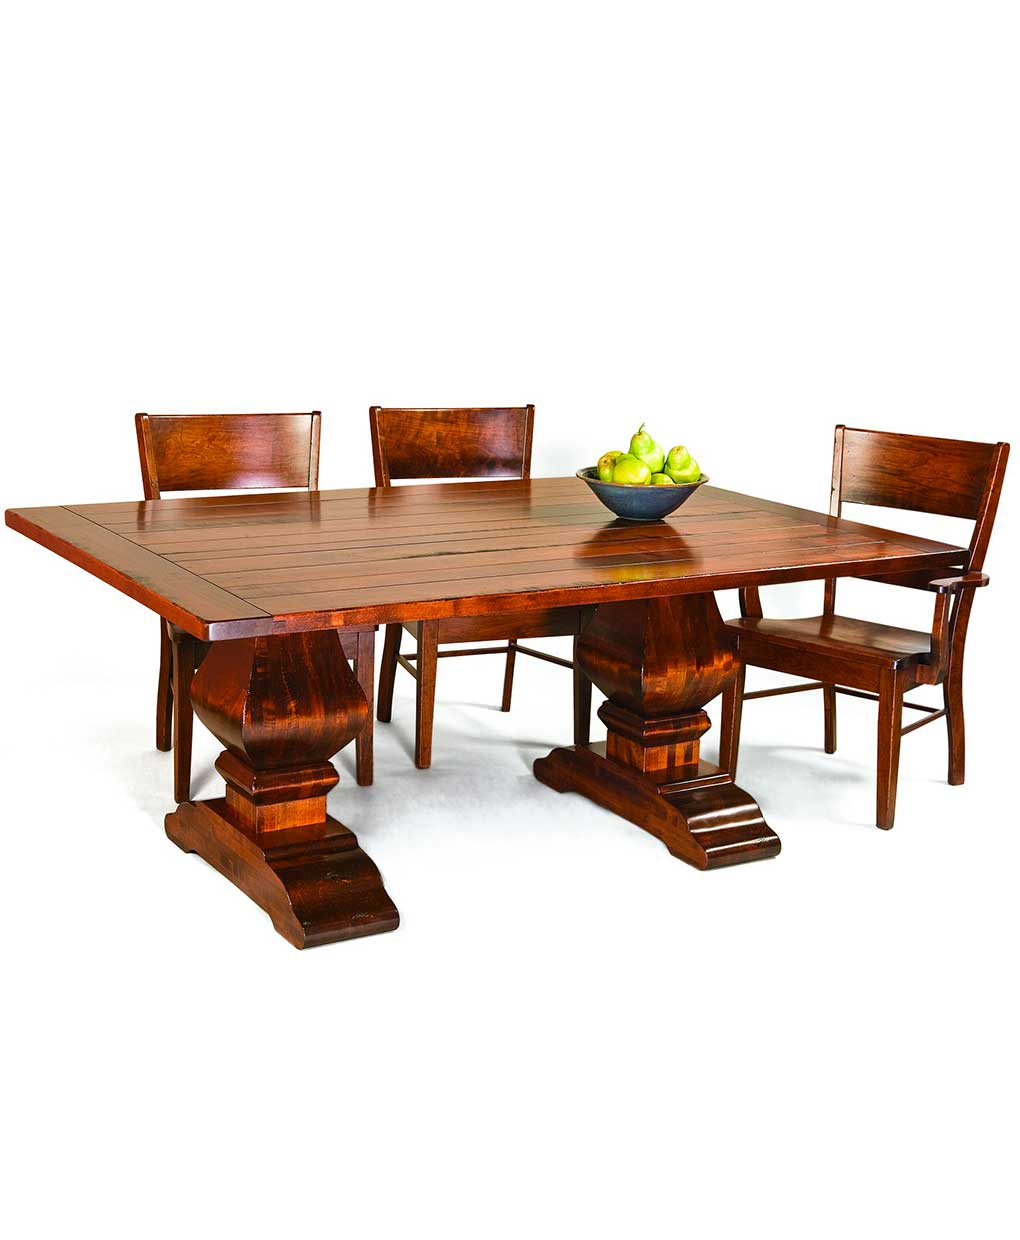 Wilmington Trestle Dining Table Amish Direct Furniture - Trestle dining room table